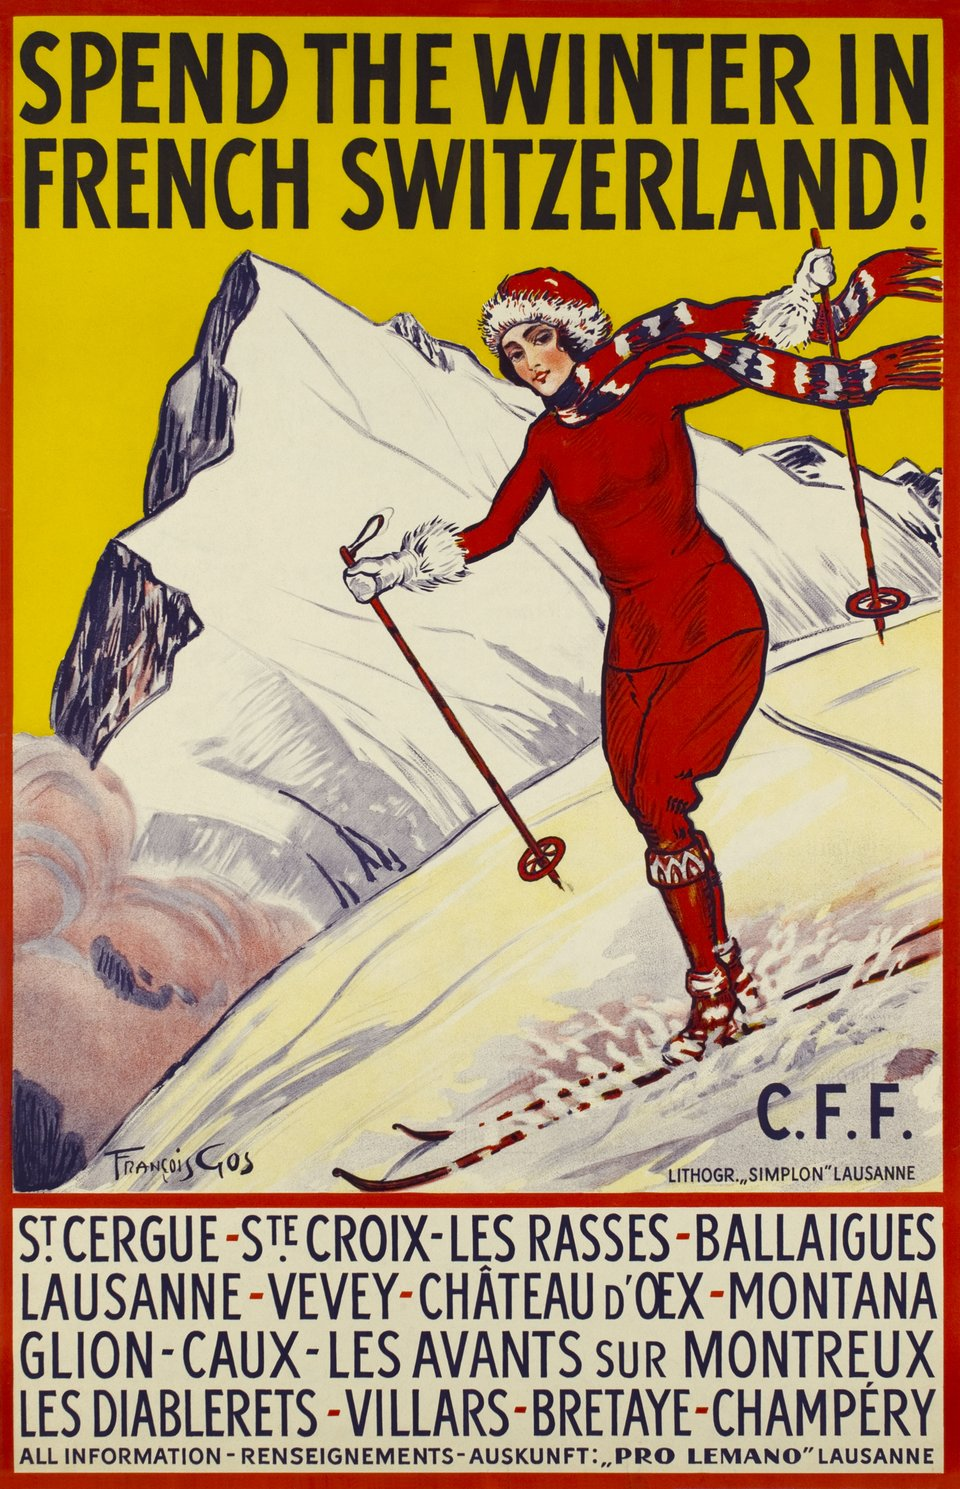 Spend the winter in French Switzerland ! – Vintage poster – Francois GOS – 1915